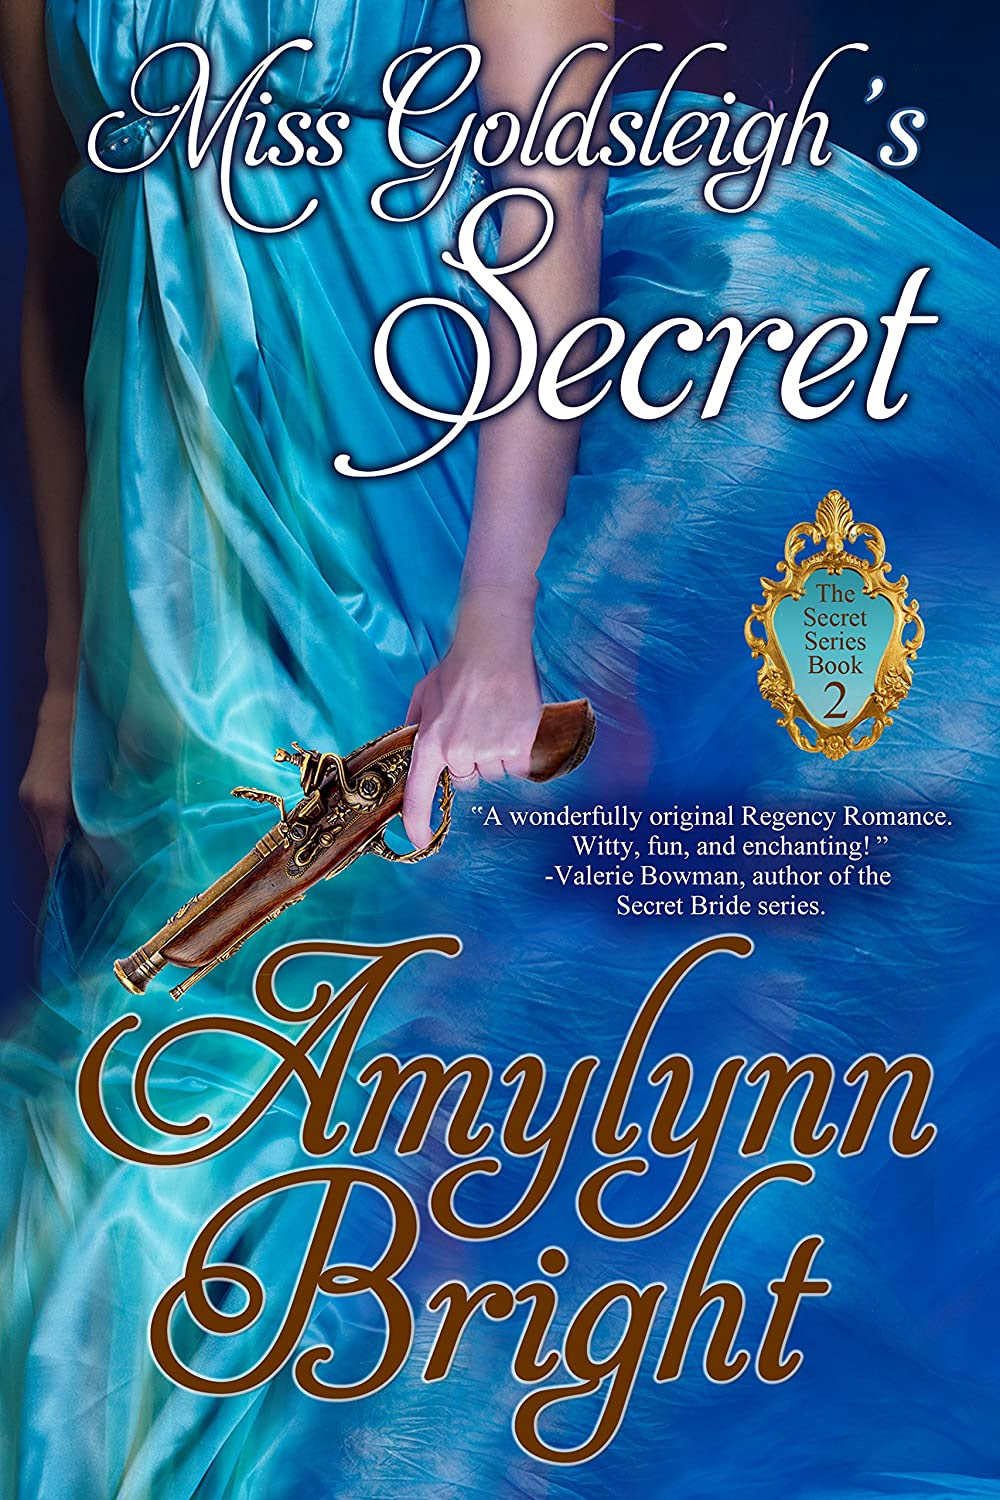 http://www.amazon.com/Miss-Goldsleighs-Secret-Amylynn-Bright-ebook/dp/B00CY2OZLW/